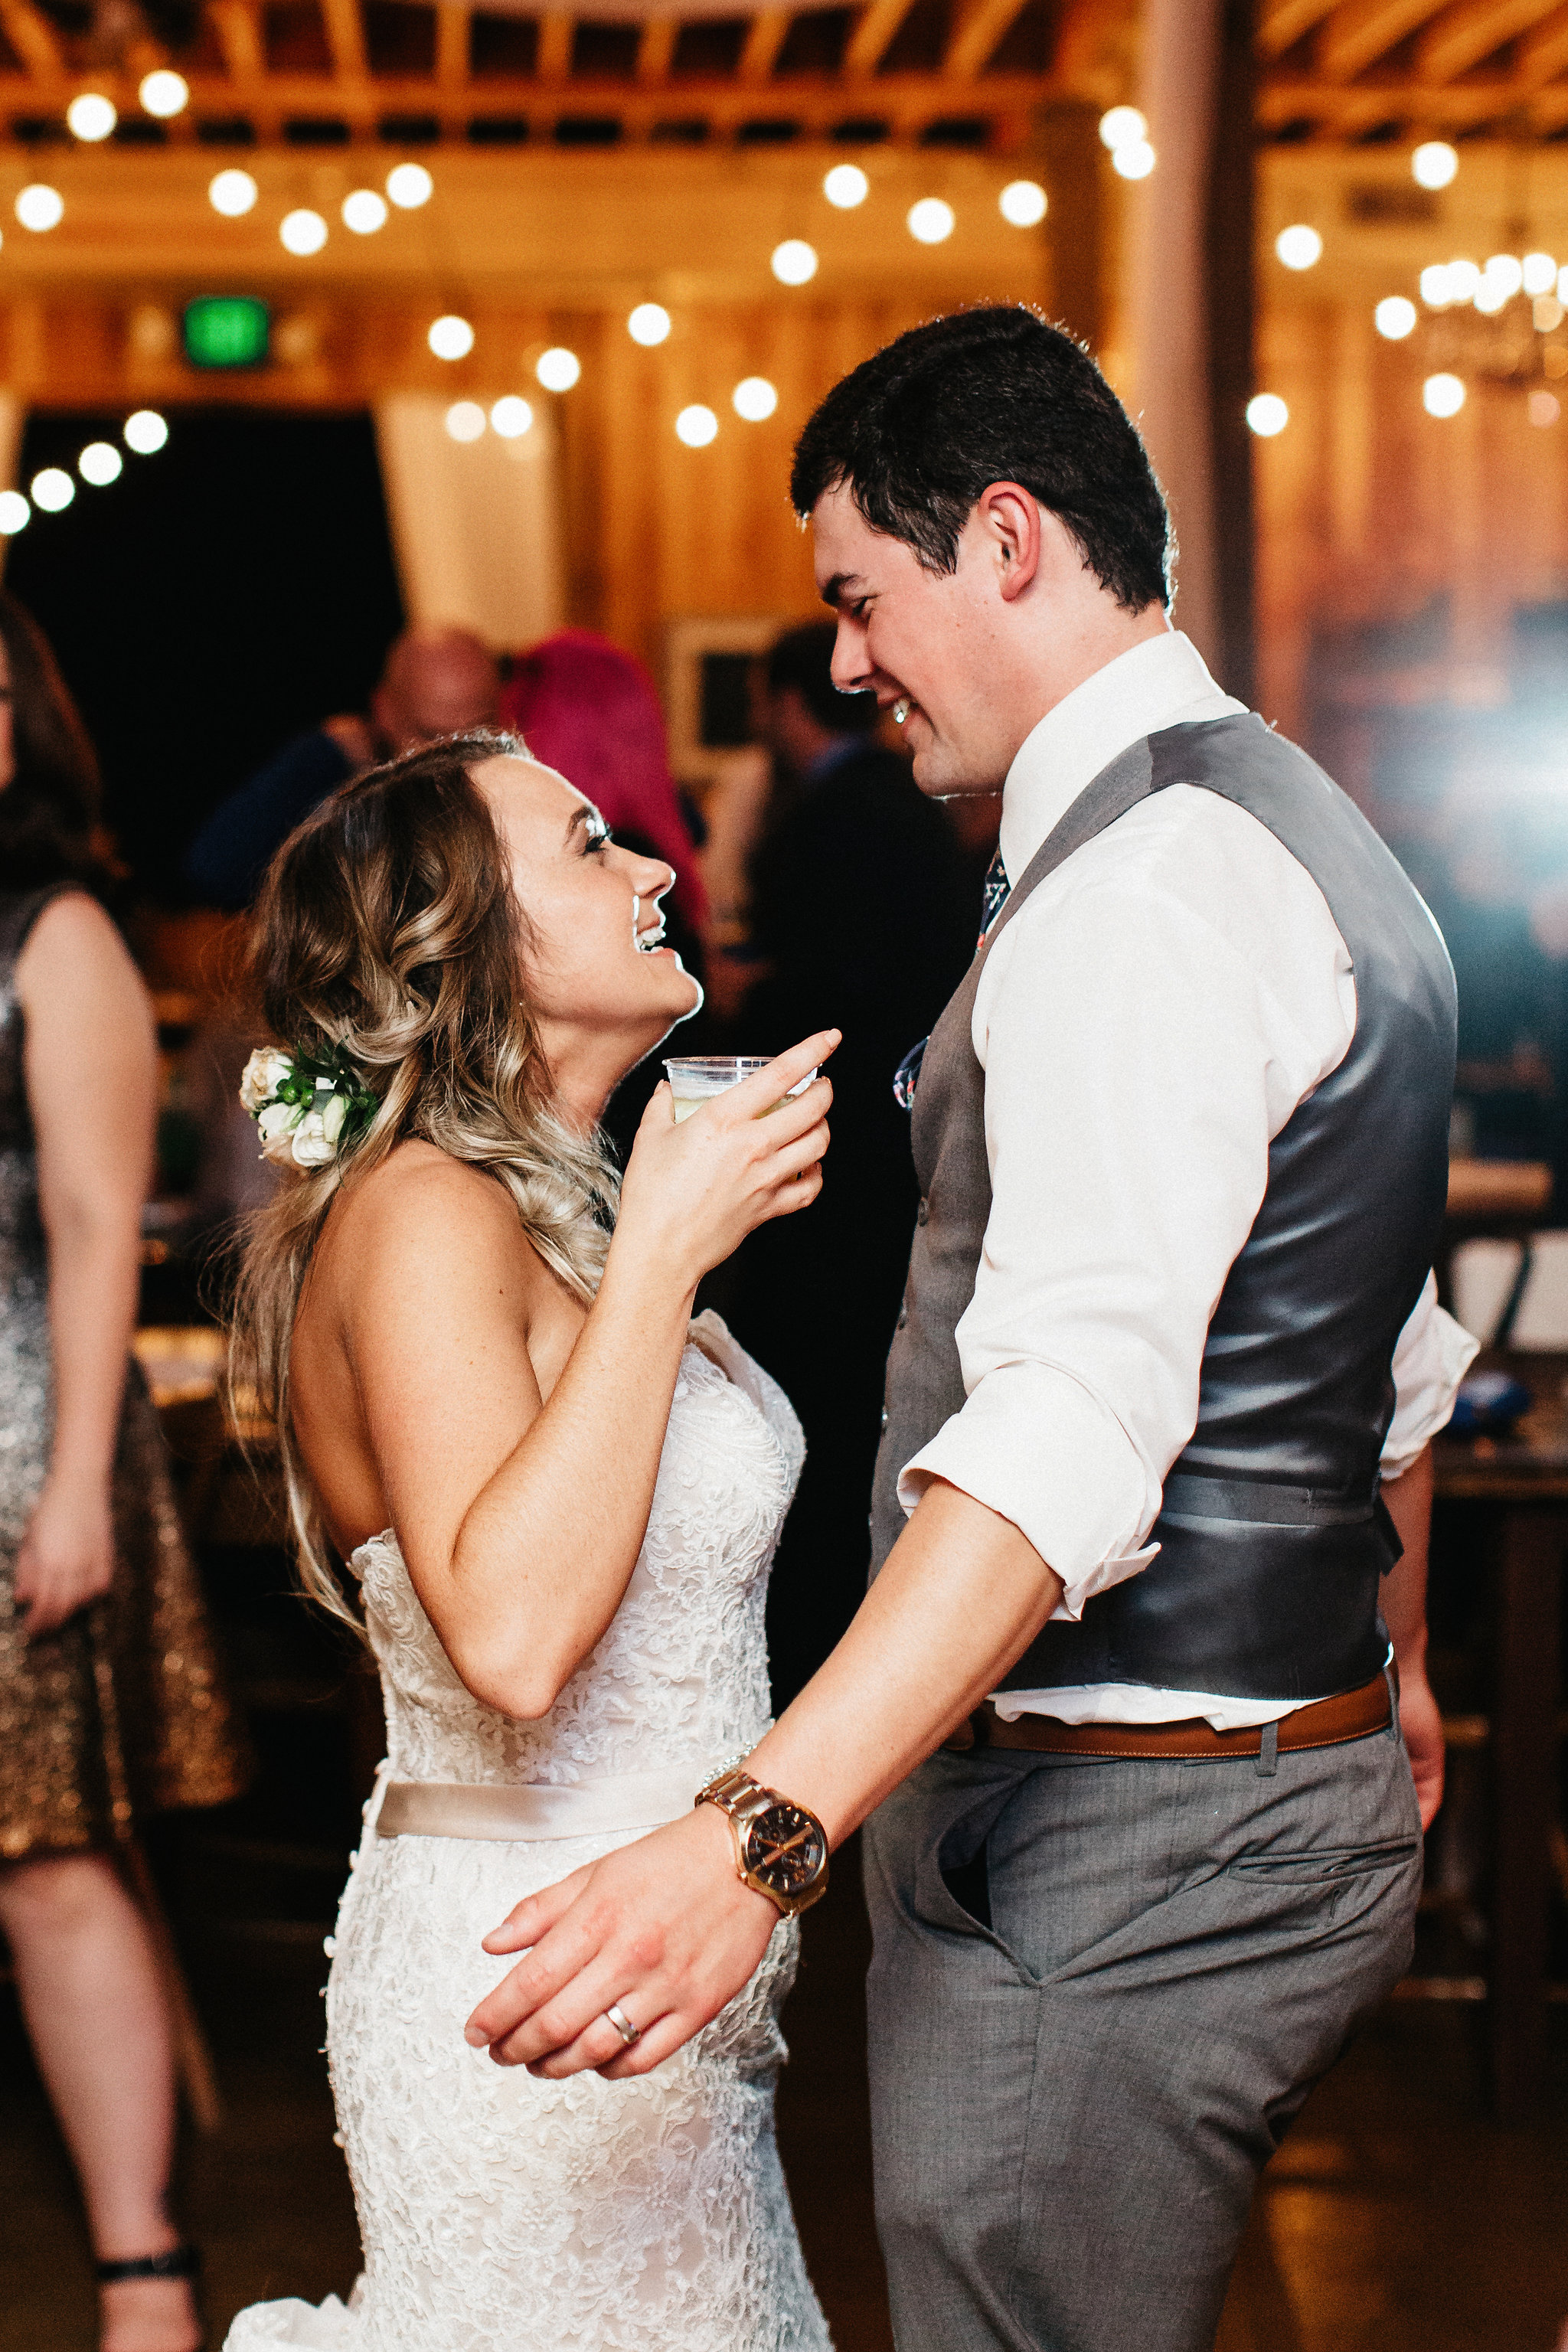 Ashley&NathanMarried2017-11-10at19.26.51PM54.jpg